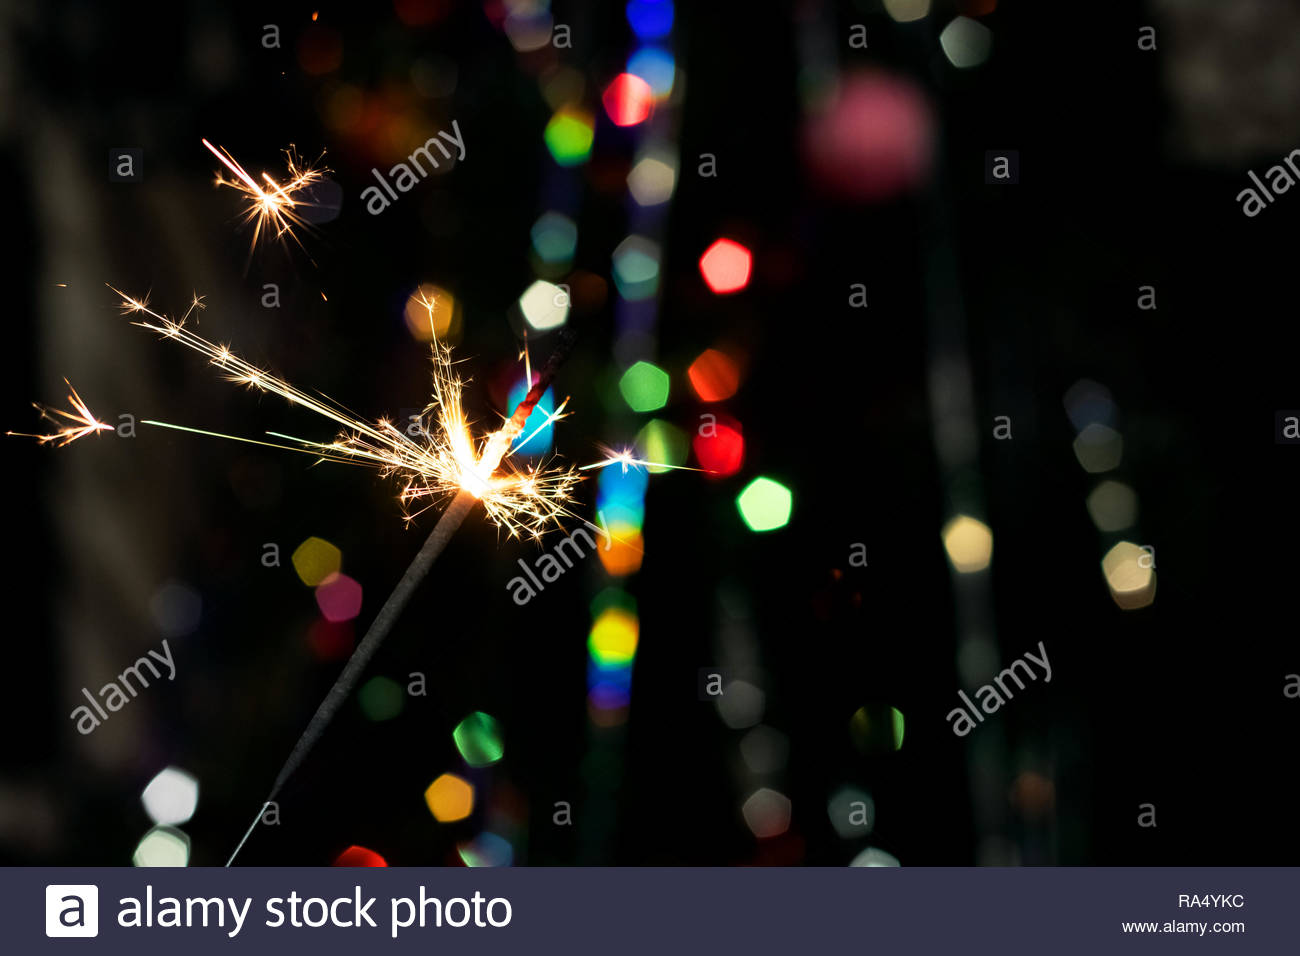 Burning sparkler on the background of New Year's fir, copy space